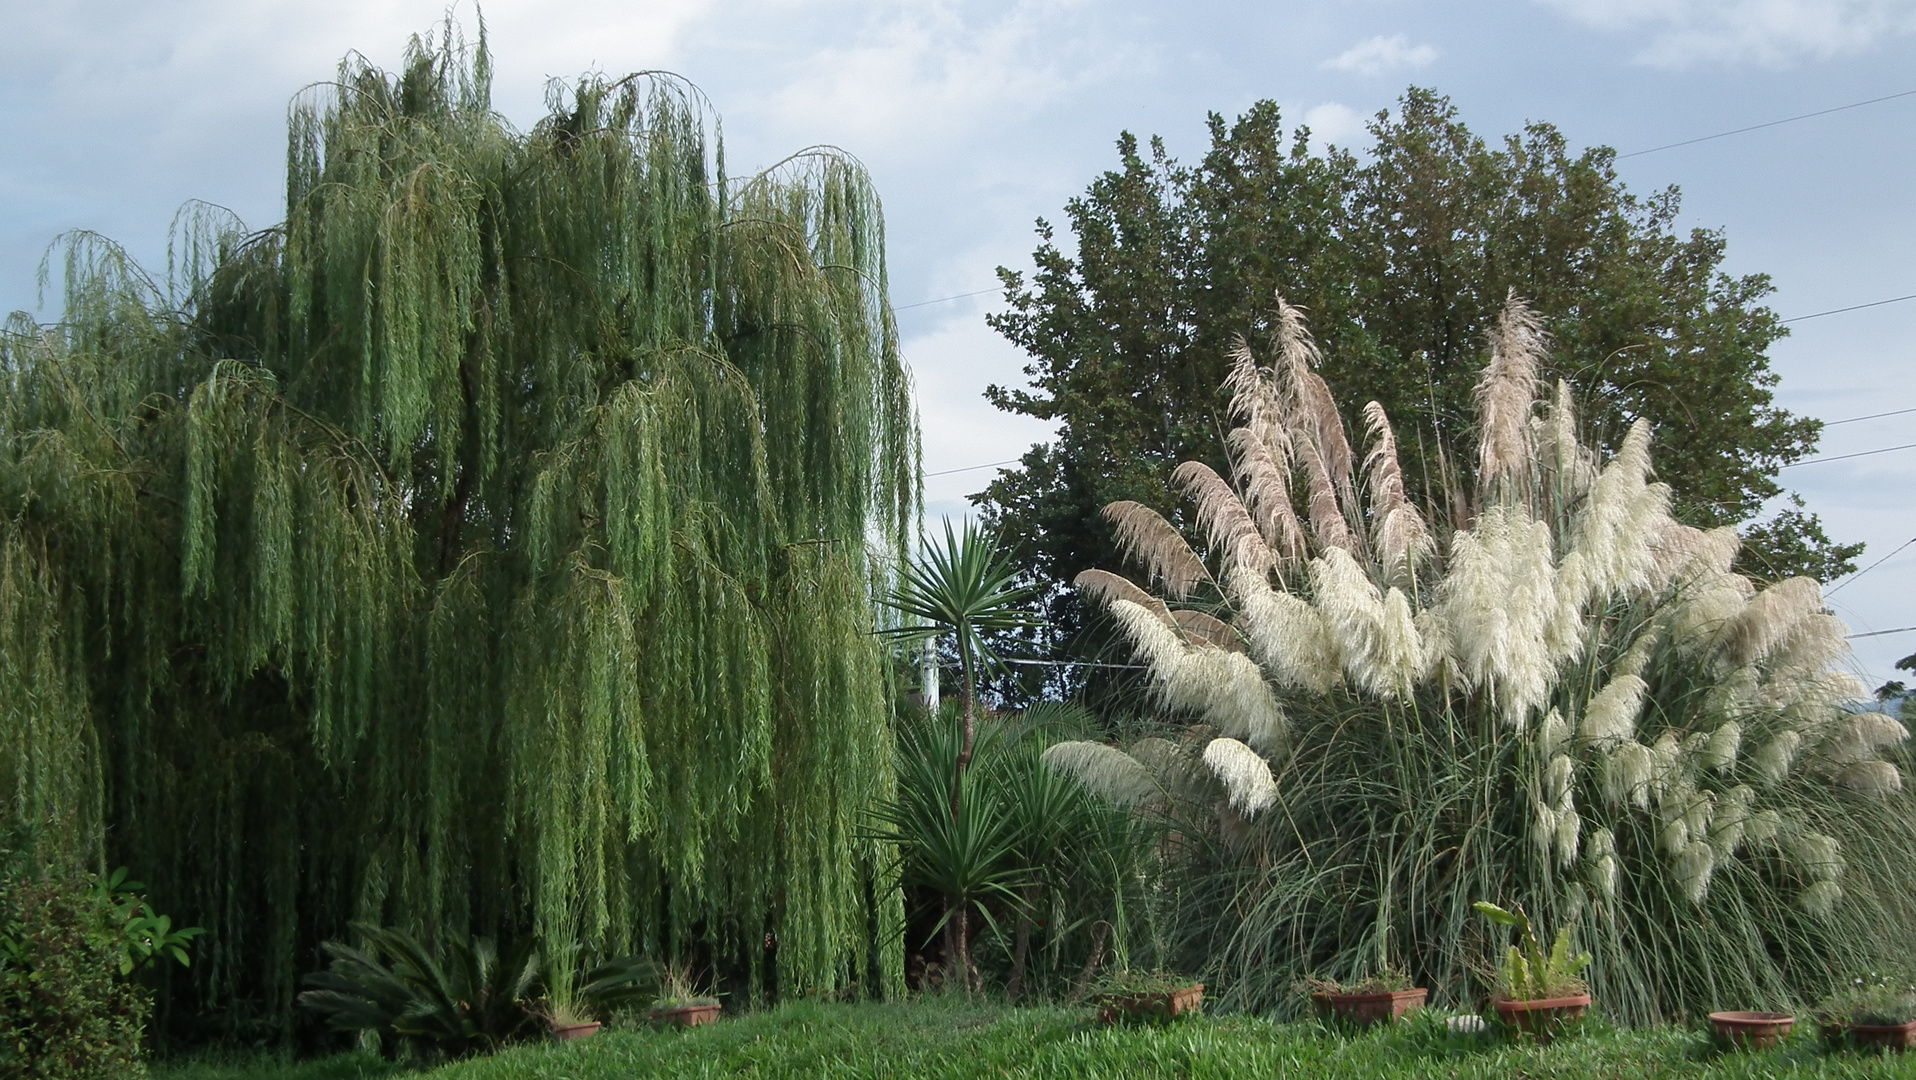 The weeping willow and the papyrus